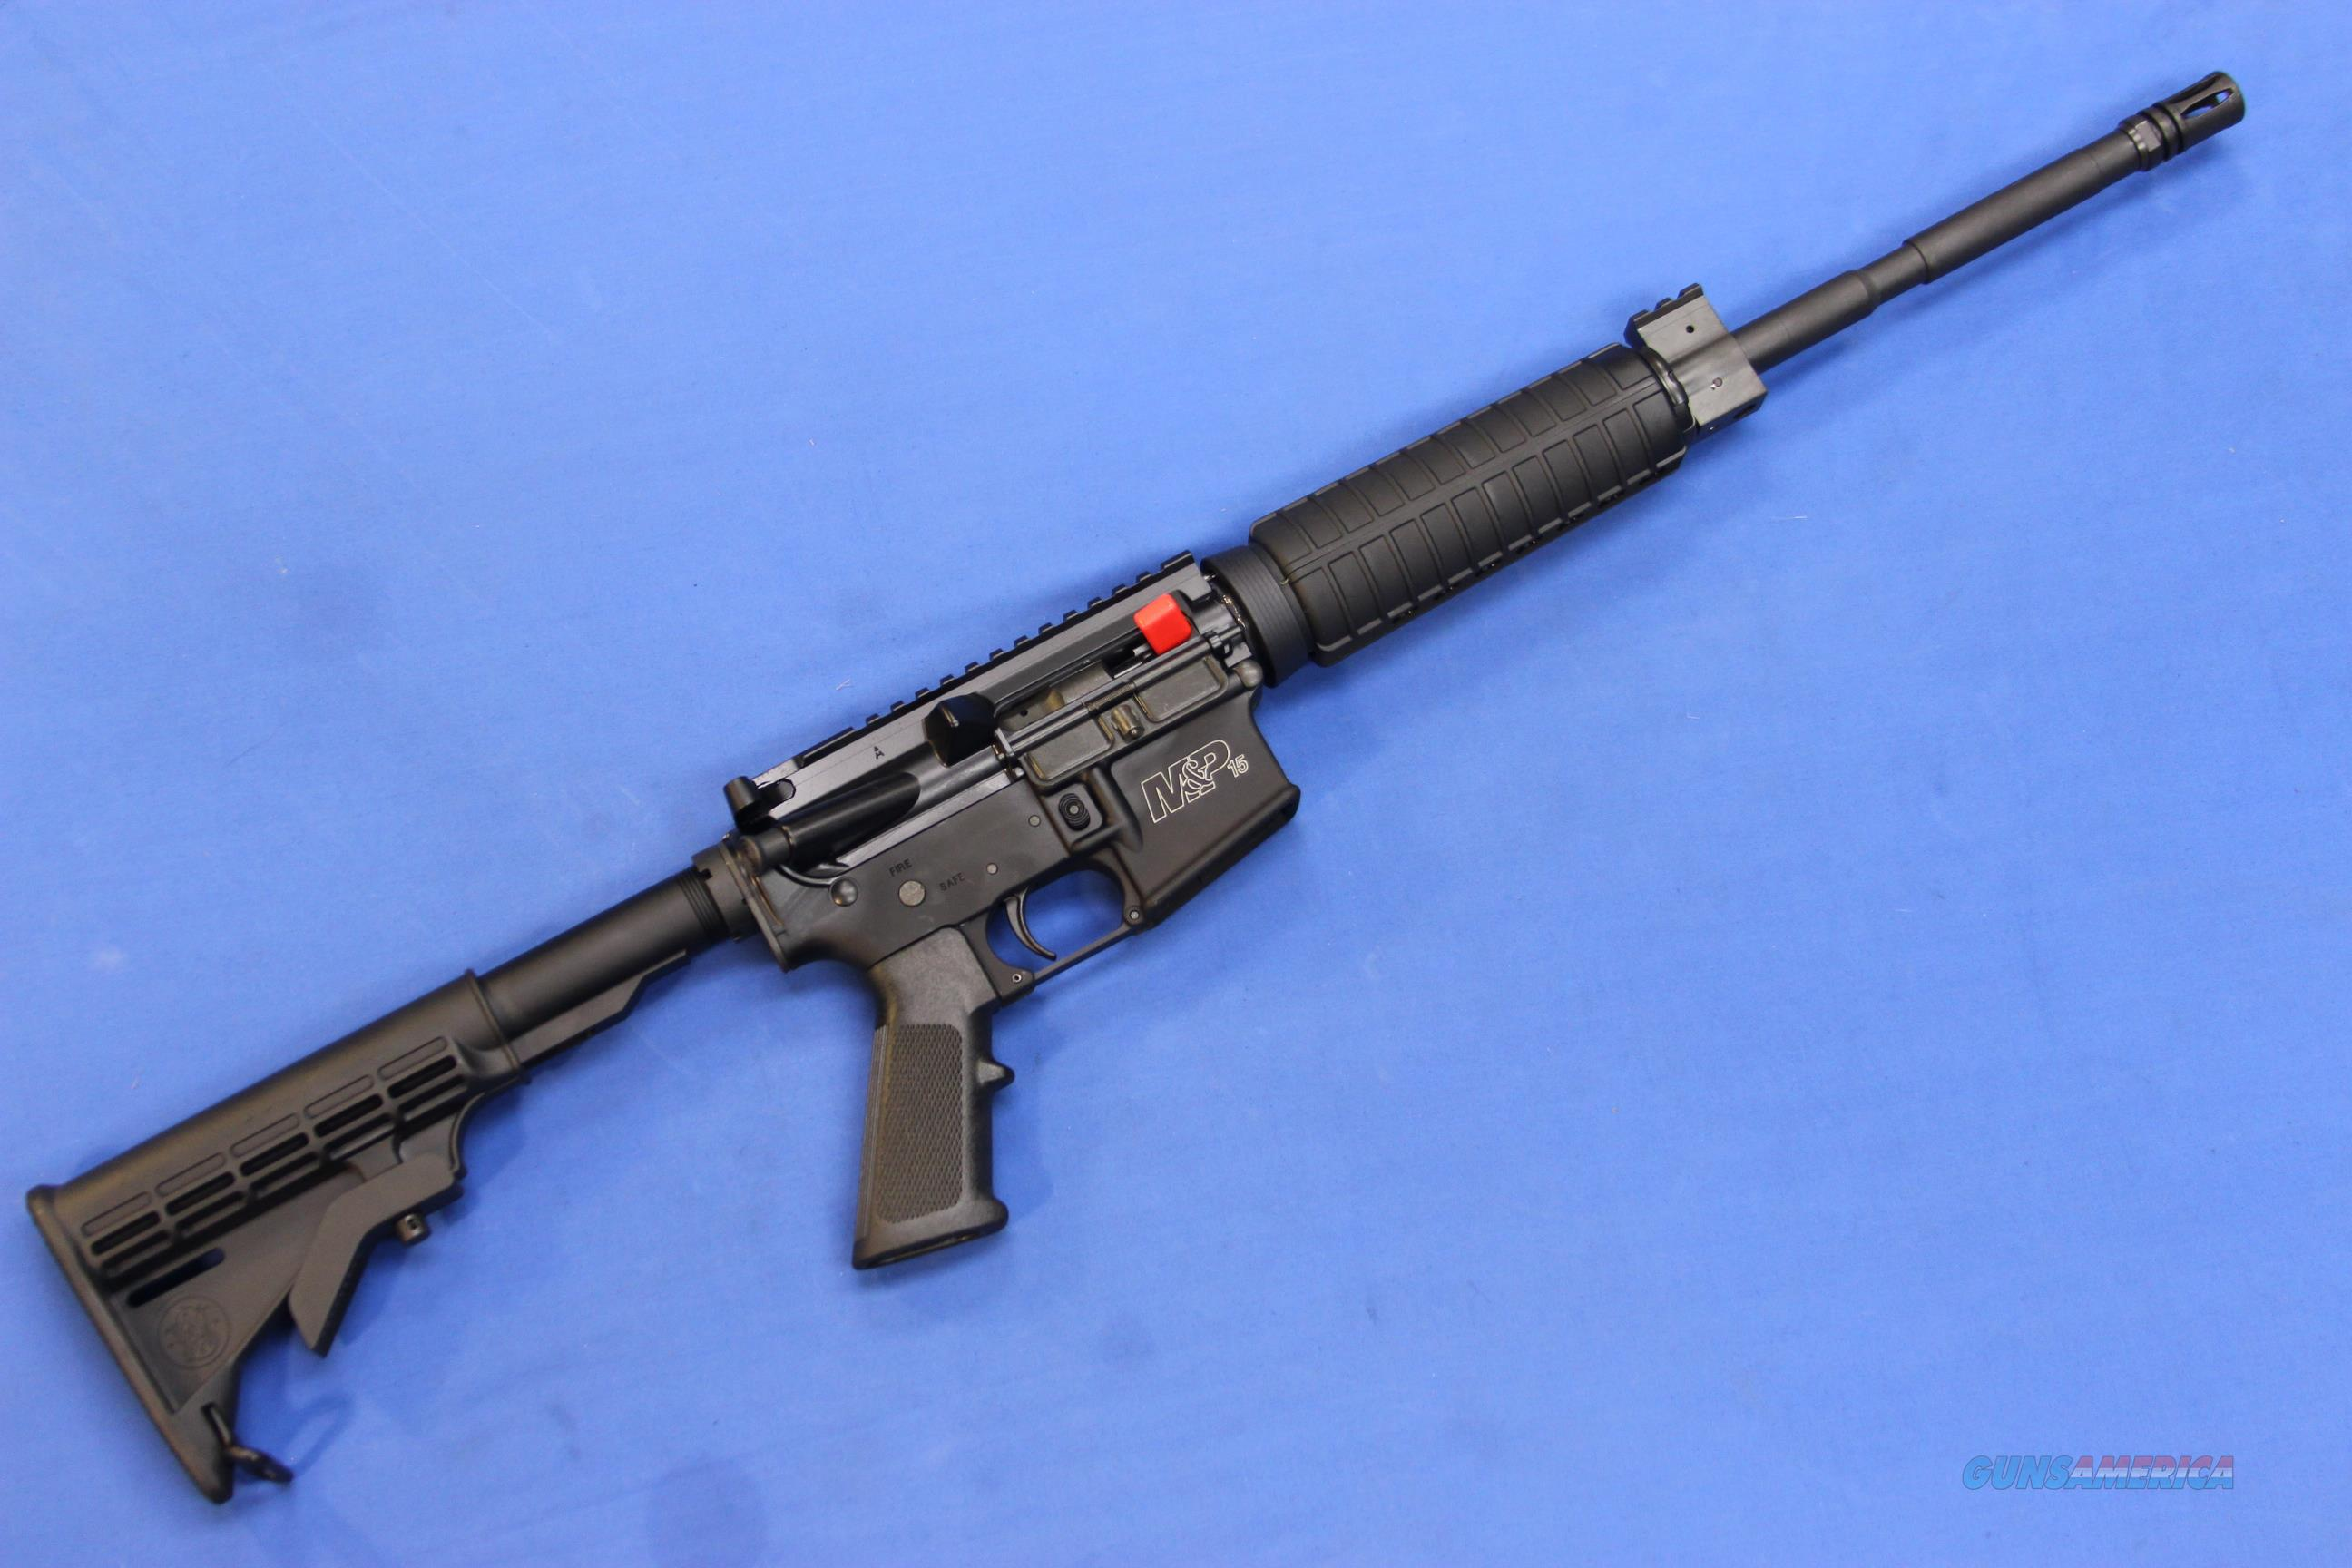 SMITH AND WESSON M&P AR-15 OR CARBINE 5.56mm NATO - NEW!  Guns > Rifles > Smith & Wesson Rifles > M&P